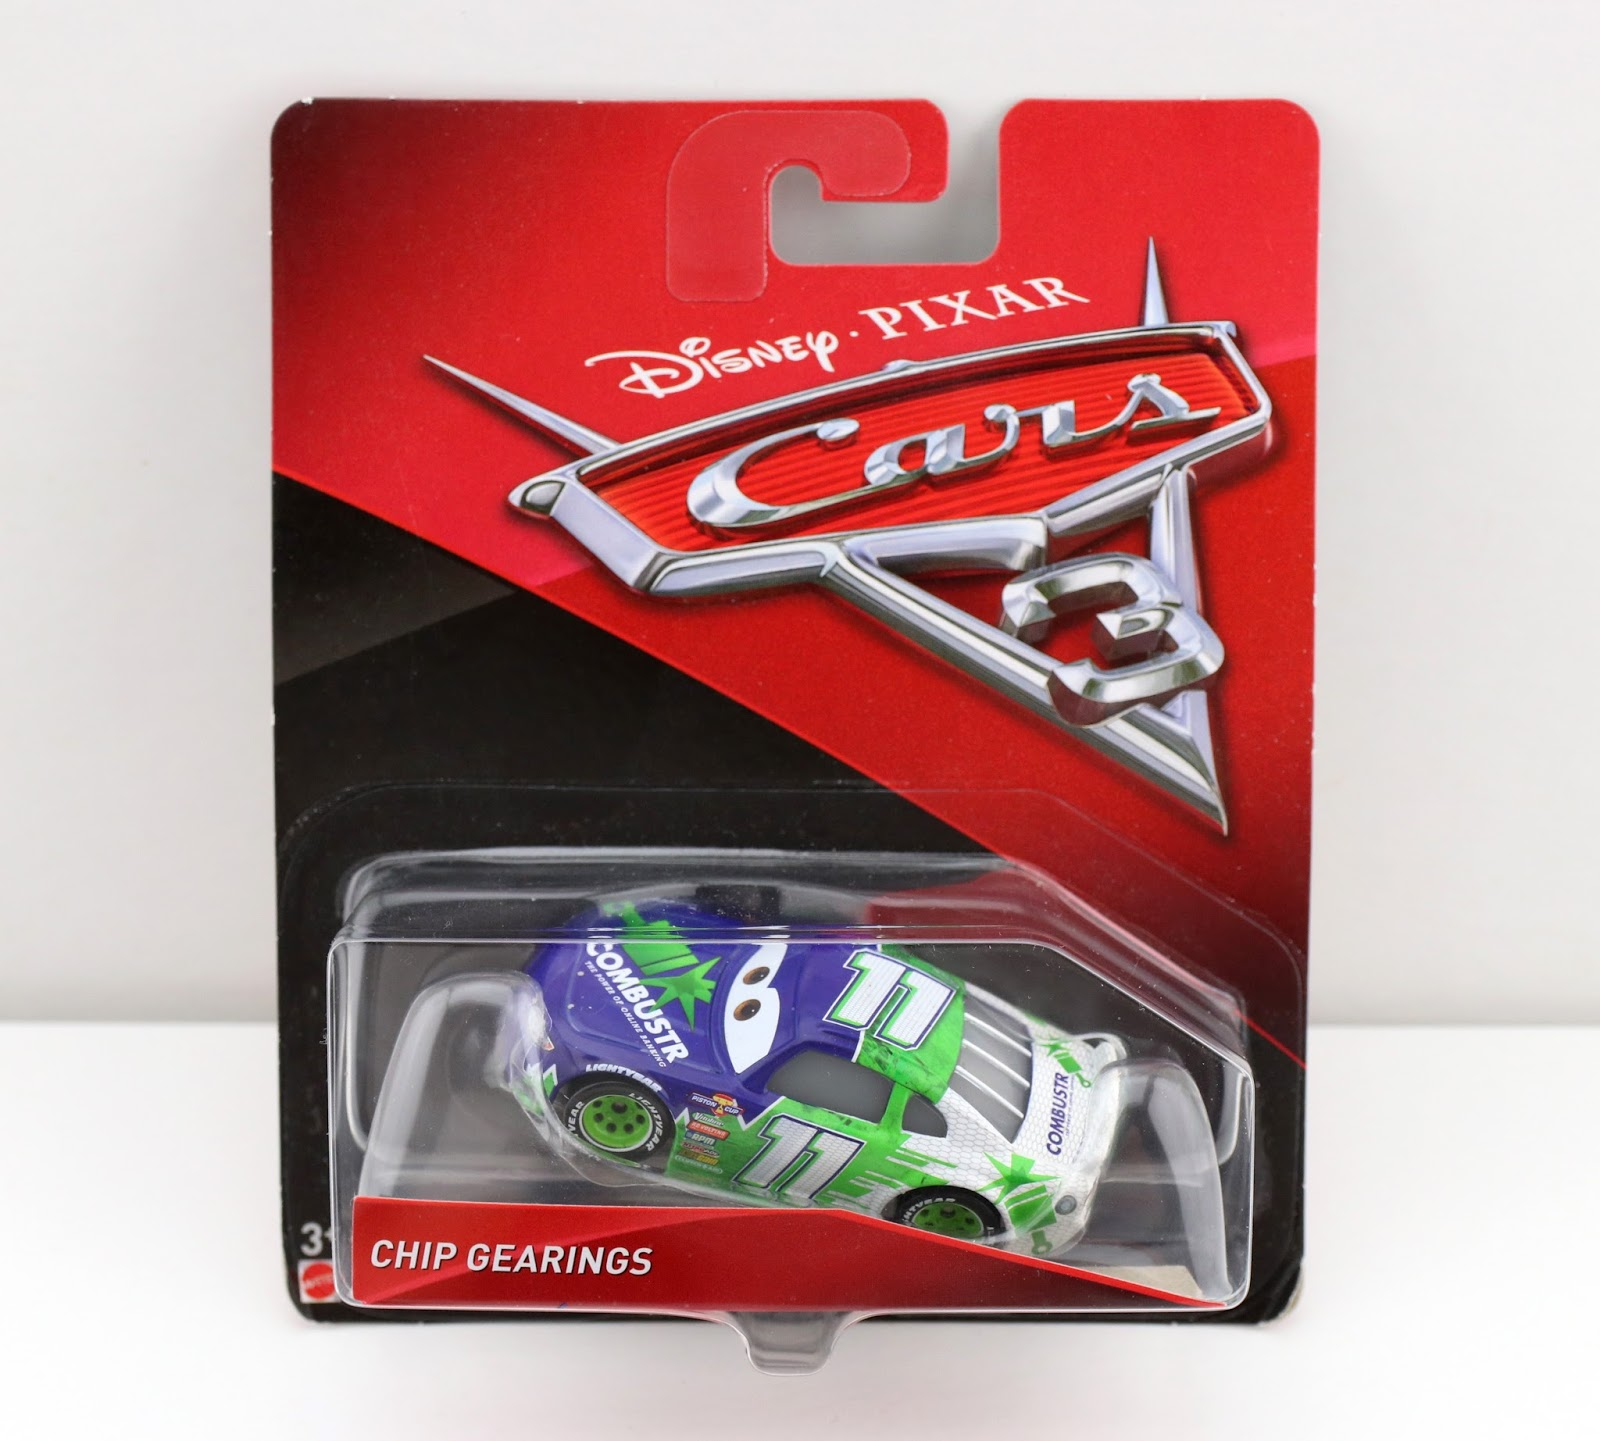 Cars 3: Chip Gearings (Combustr) diecast review